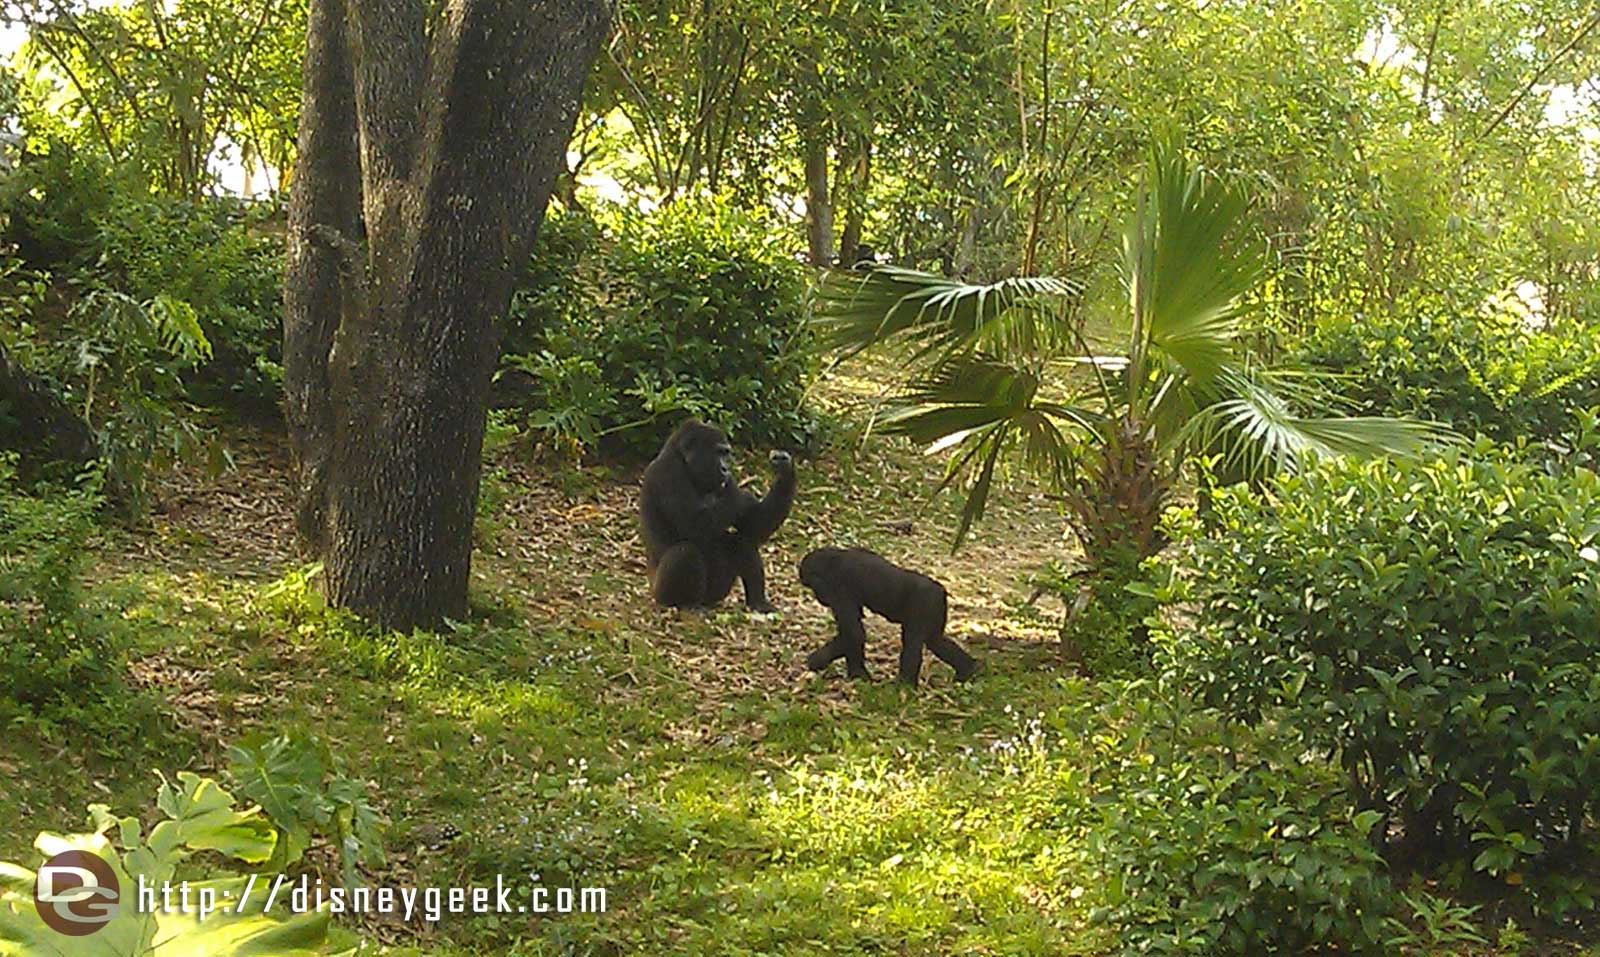 The family group of gorillas in Pangani